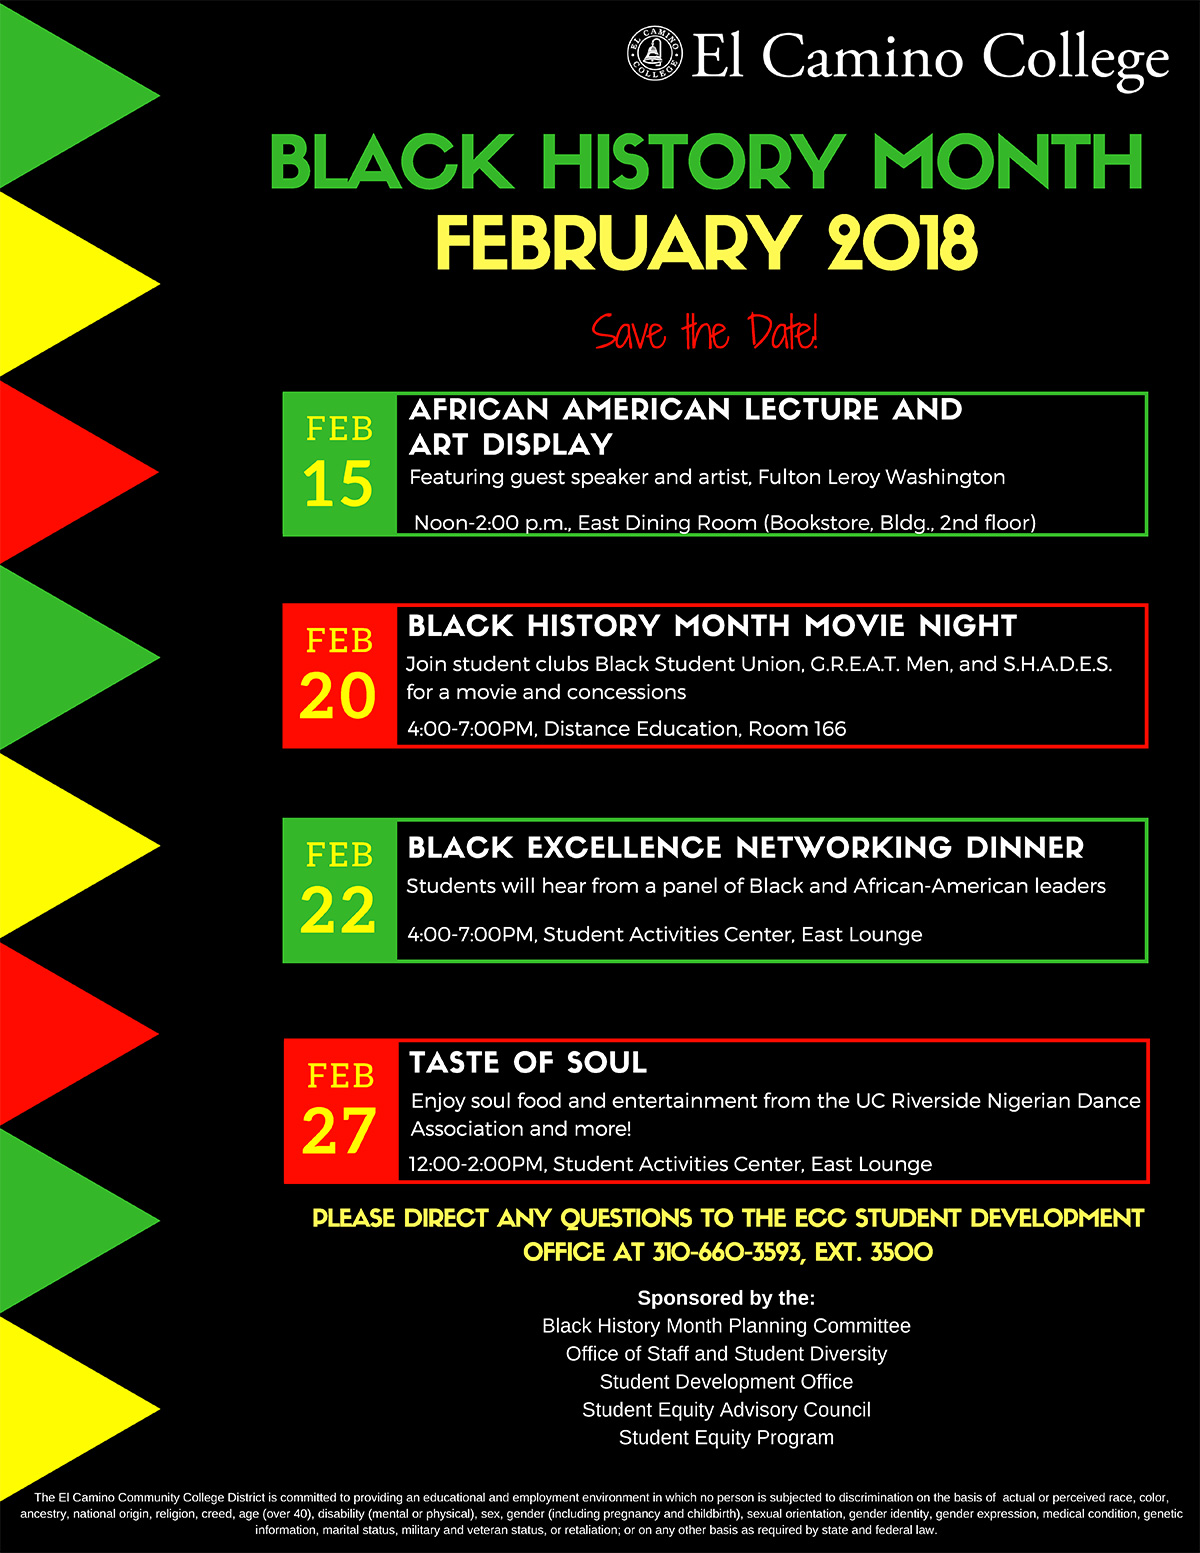 2018 Black History Month Events